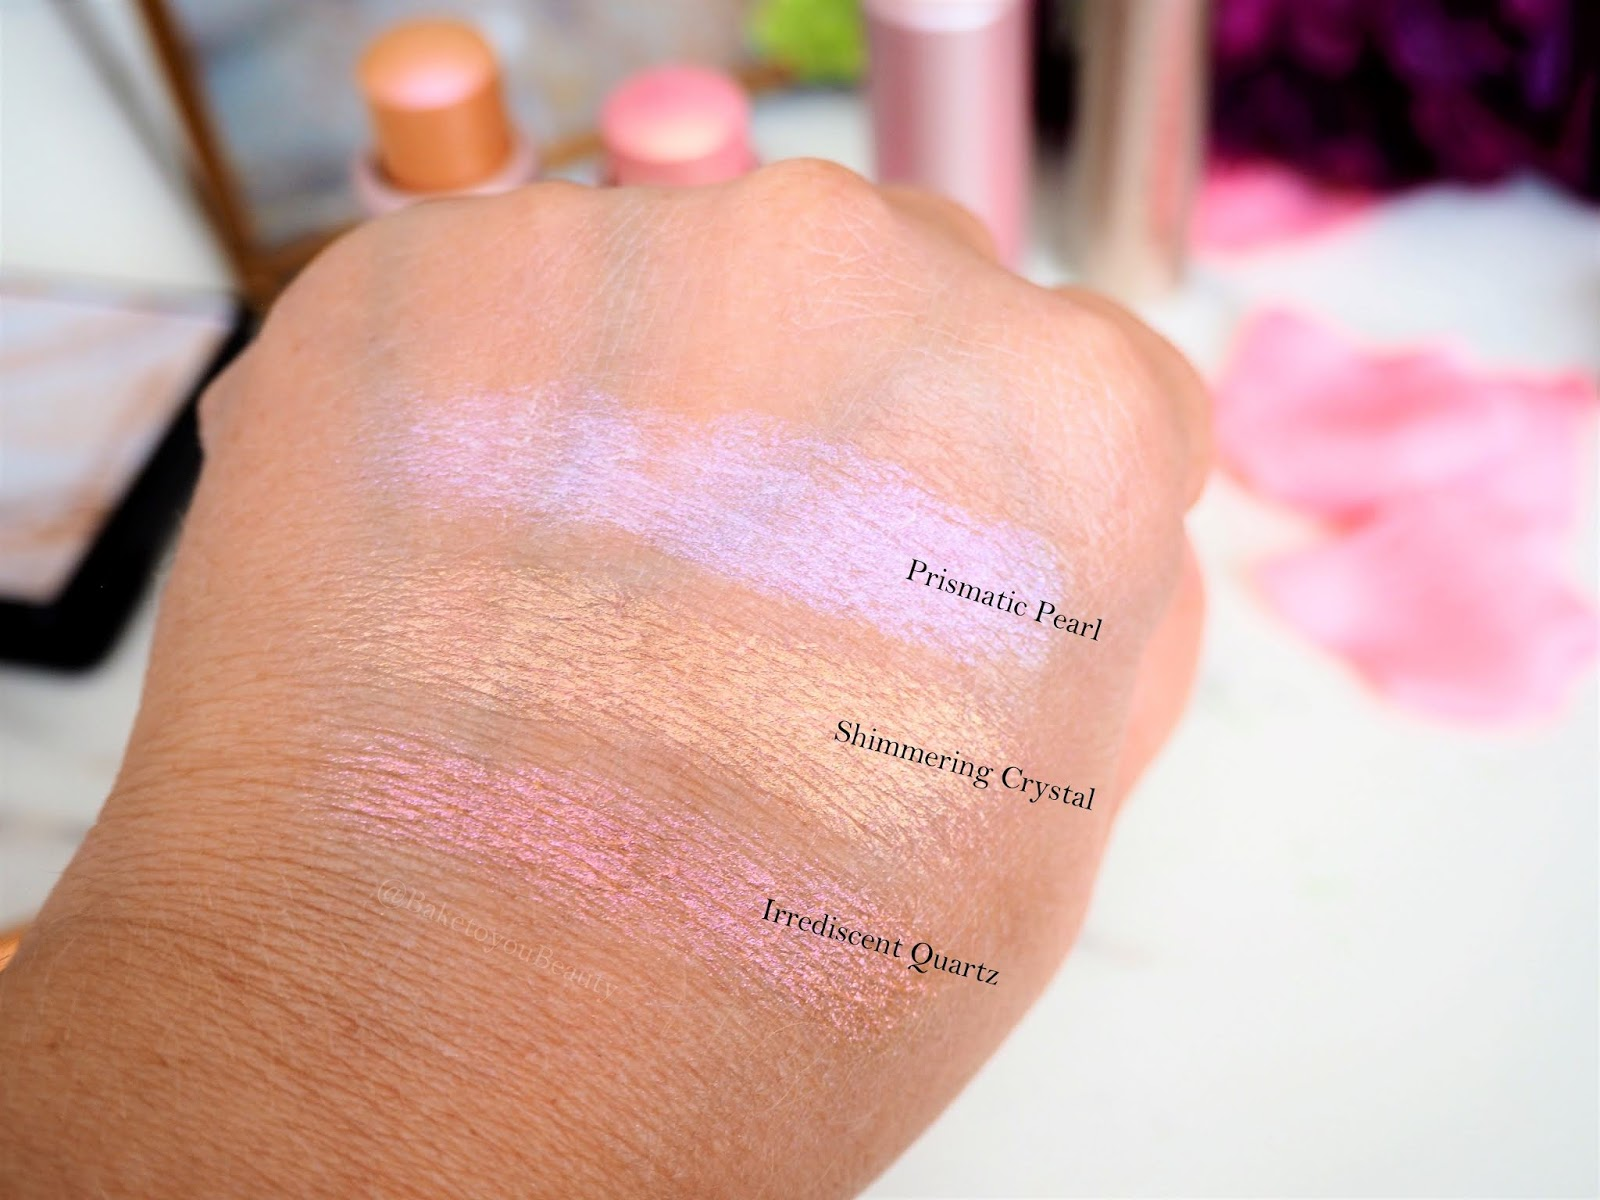 Bareminerals Crystalline Glow highlighters